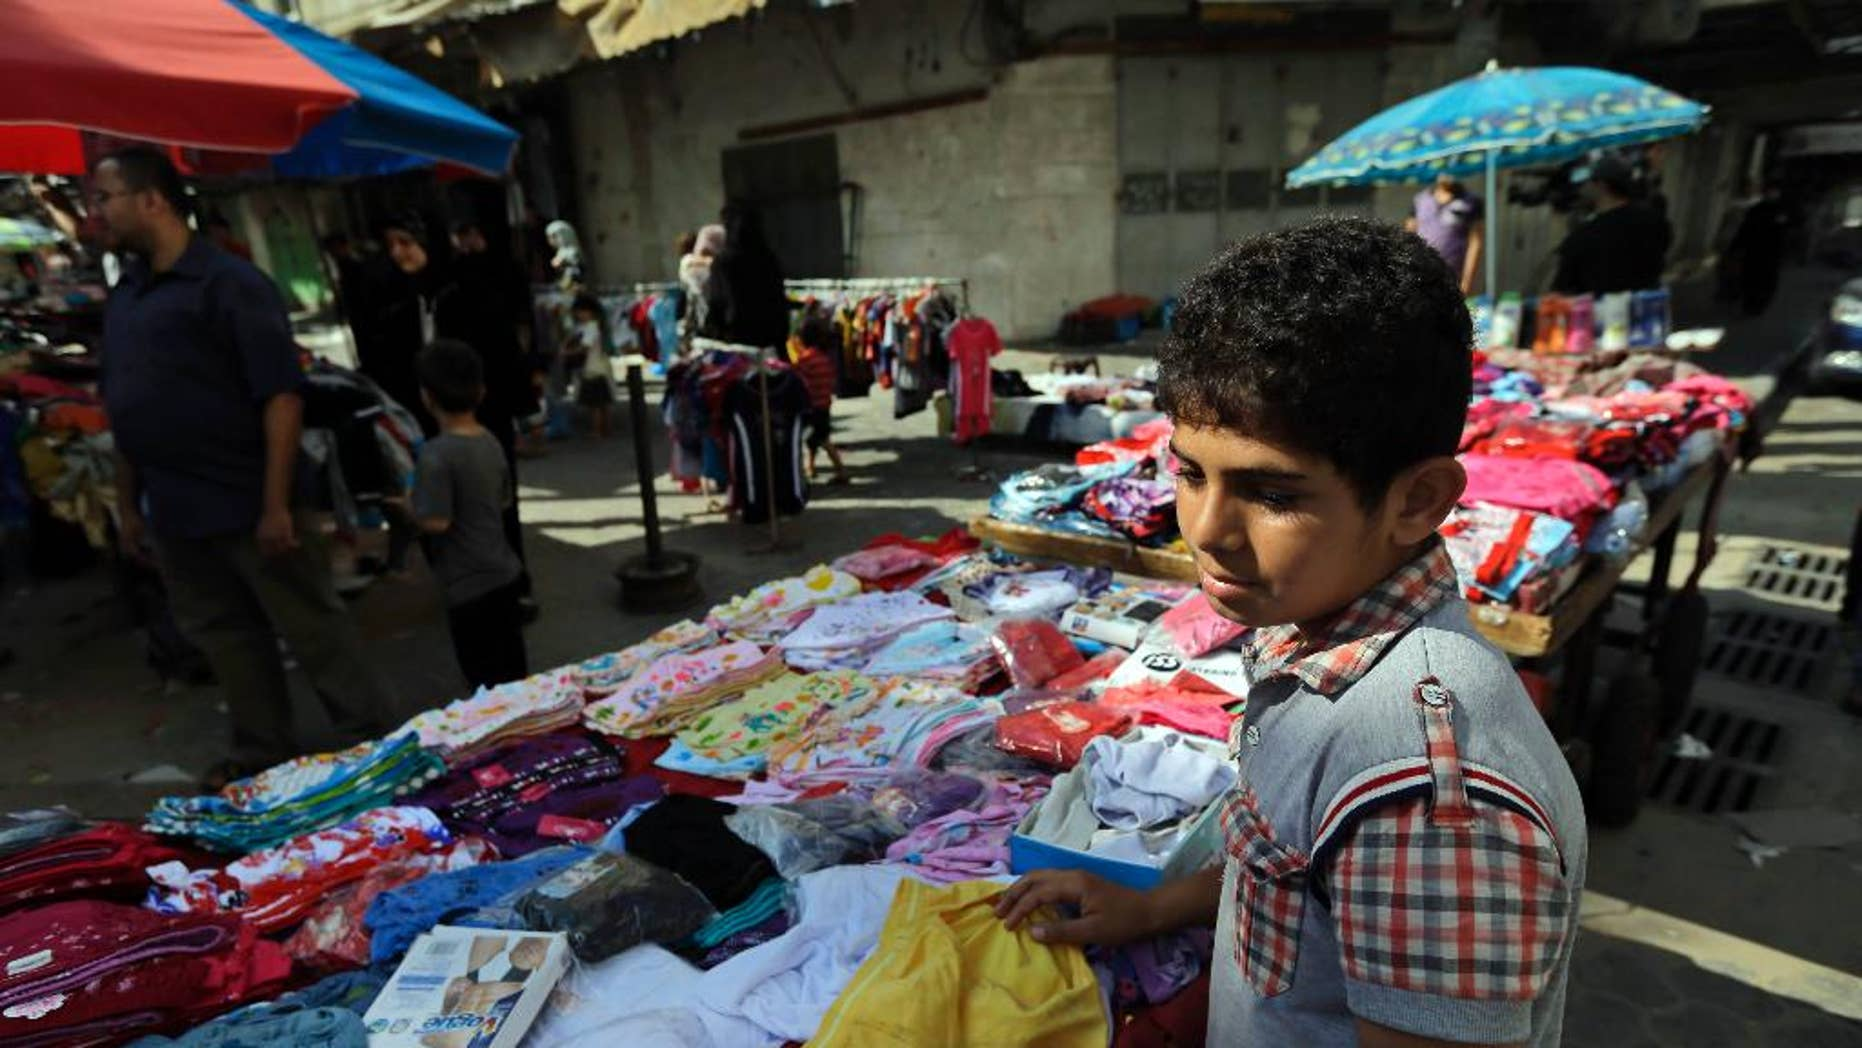 A Palestinian vendor arranges his merchandise at a market in Gaza City, northern Gaza Strip, Wednesday, Aug. 6, 2014. A cease-fire between Israel and Hamas that ended a month of fighting is holding for a second day, ahead of negotiations in Cairo on a long-term truce and a broader deal for the war-ravaged Gaza Strip. (AP Photo/Lefteris Pitarakis)